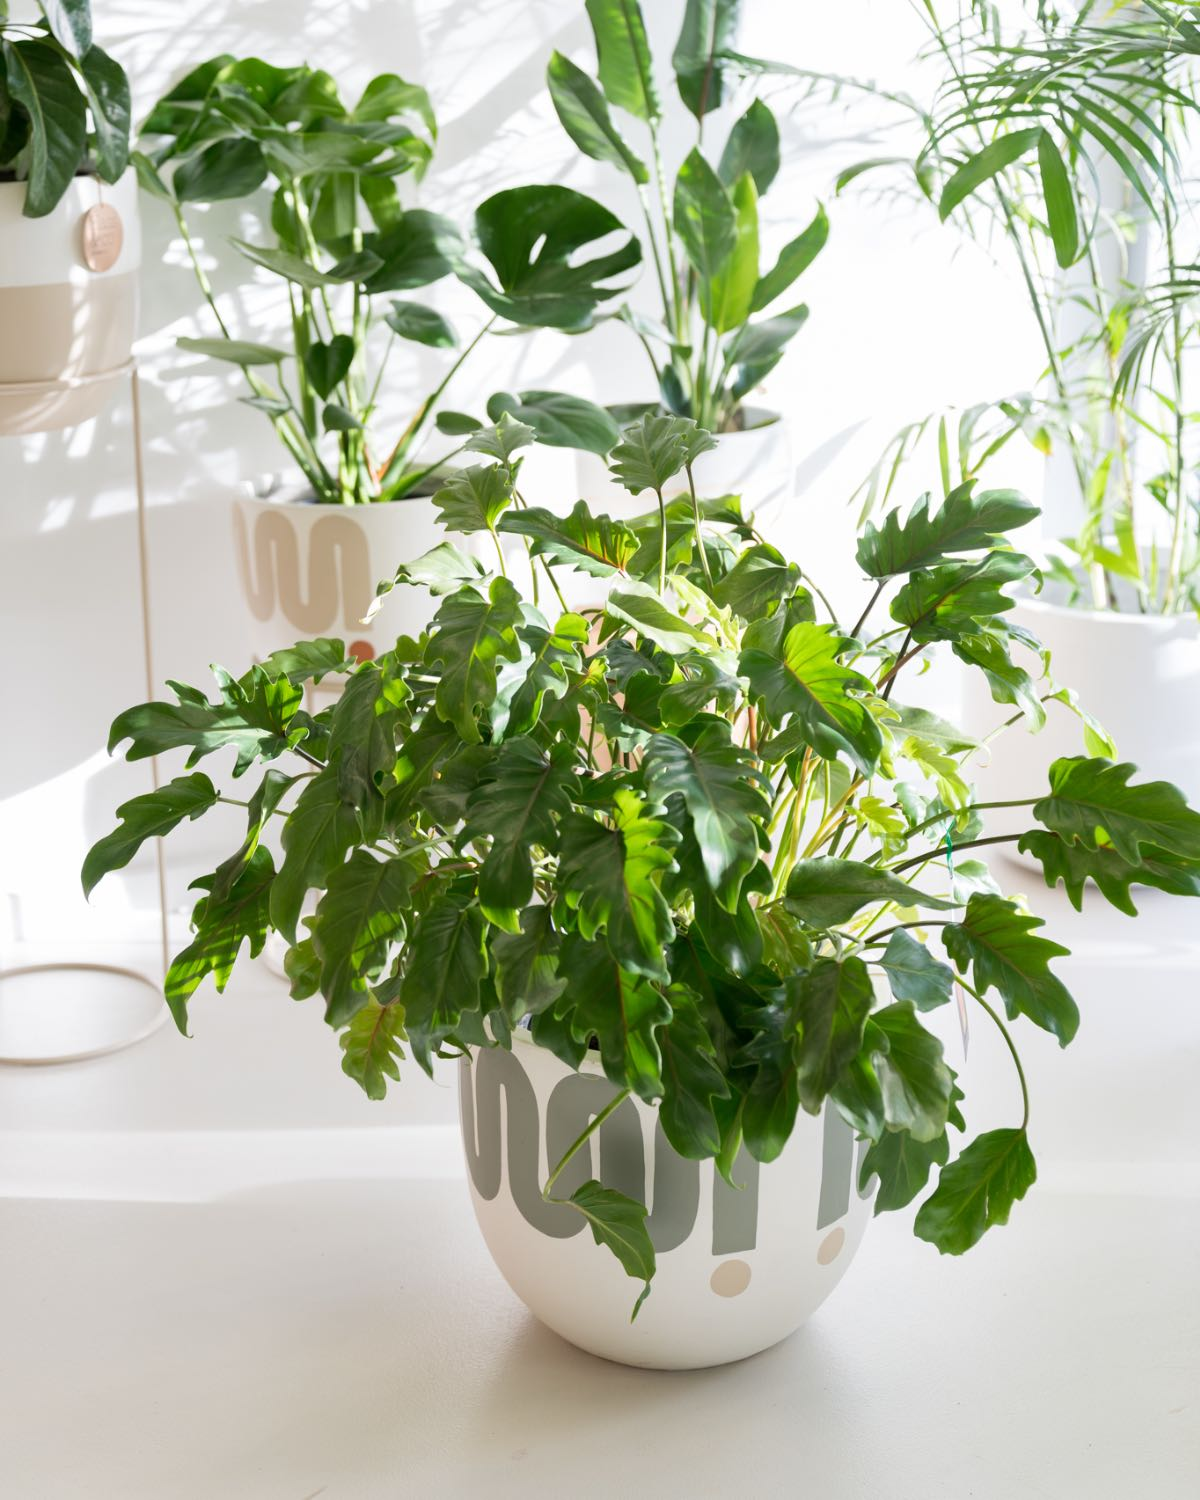 Philodendron xanadu - Large